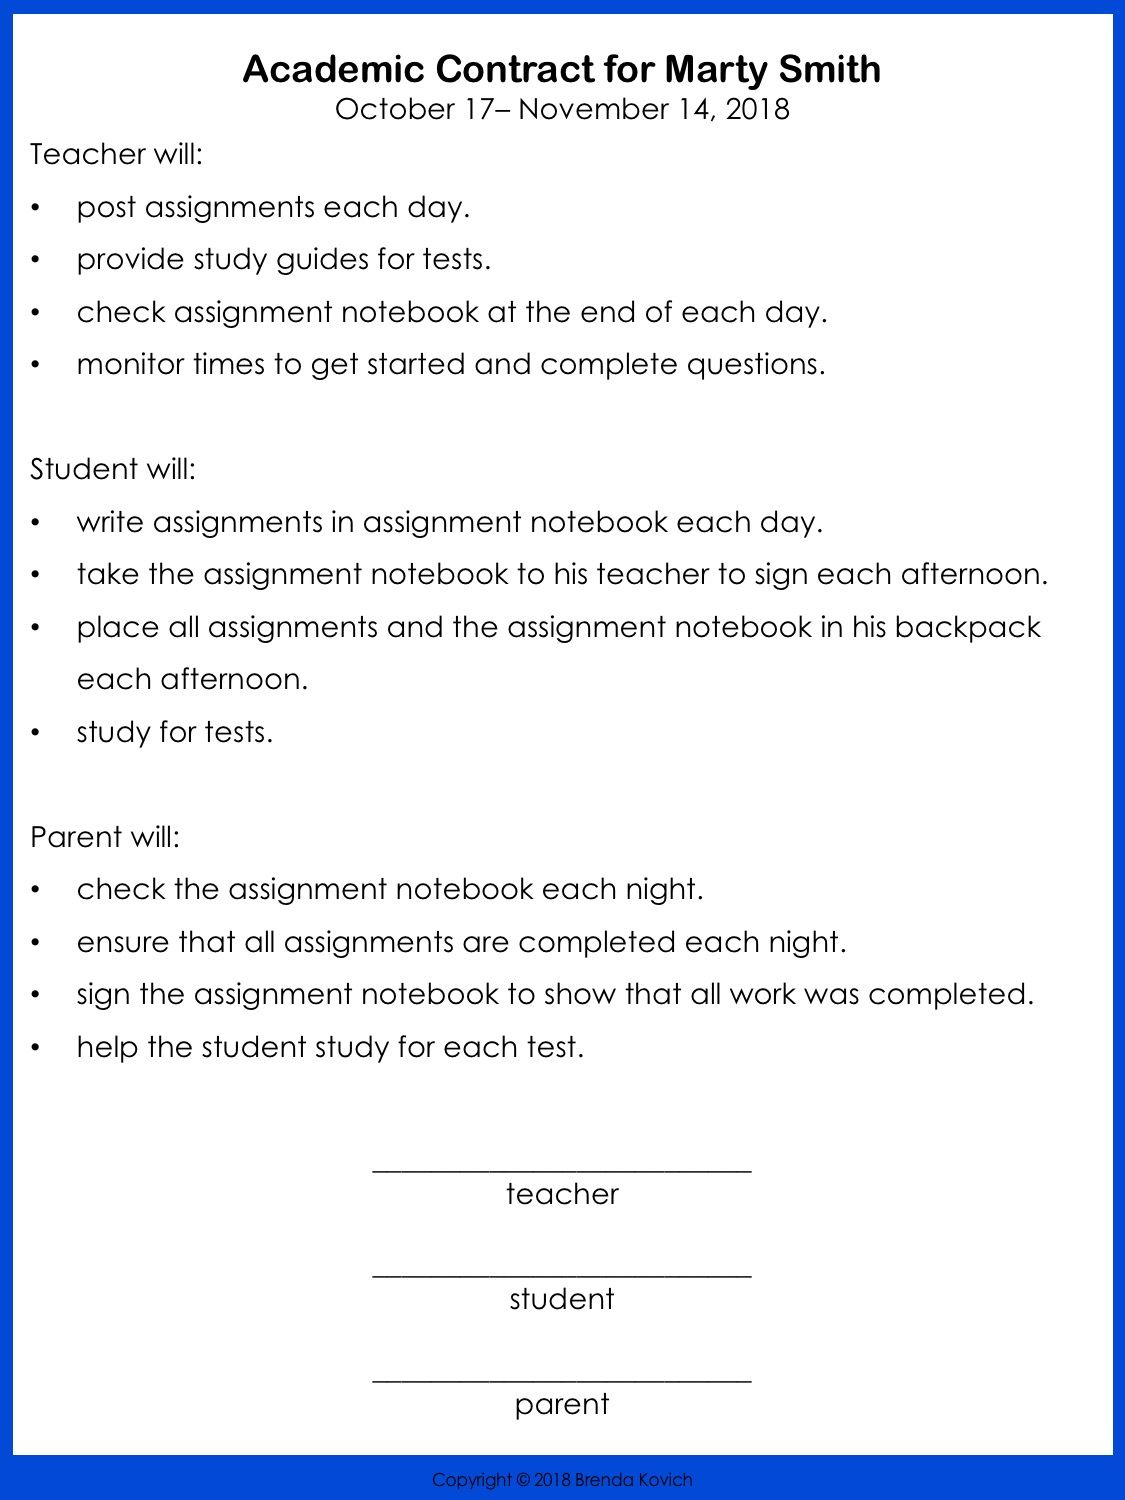 6 Steps To Creating Behavior Contracts For Challenging Students Behavior Contract Student Behavior Contract Classroom Behavior